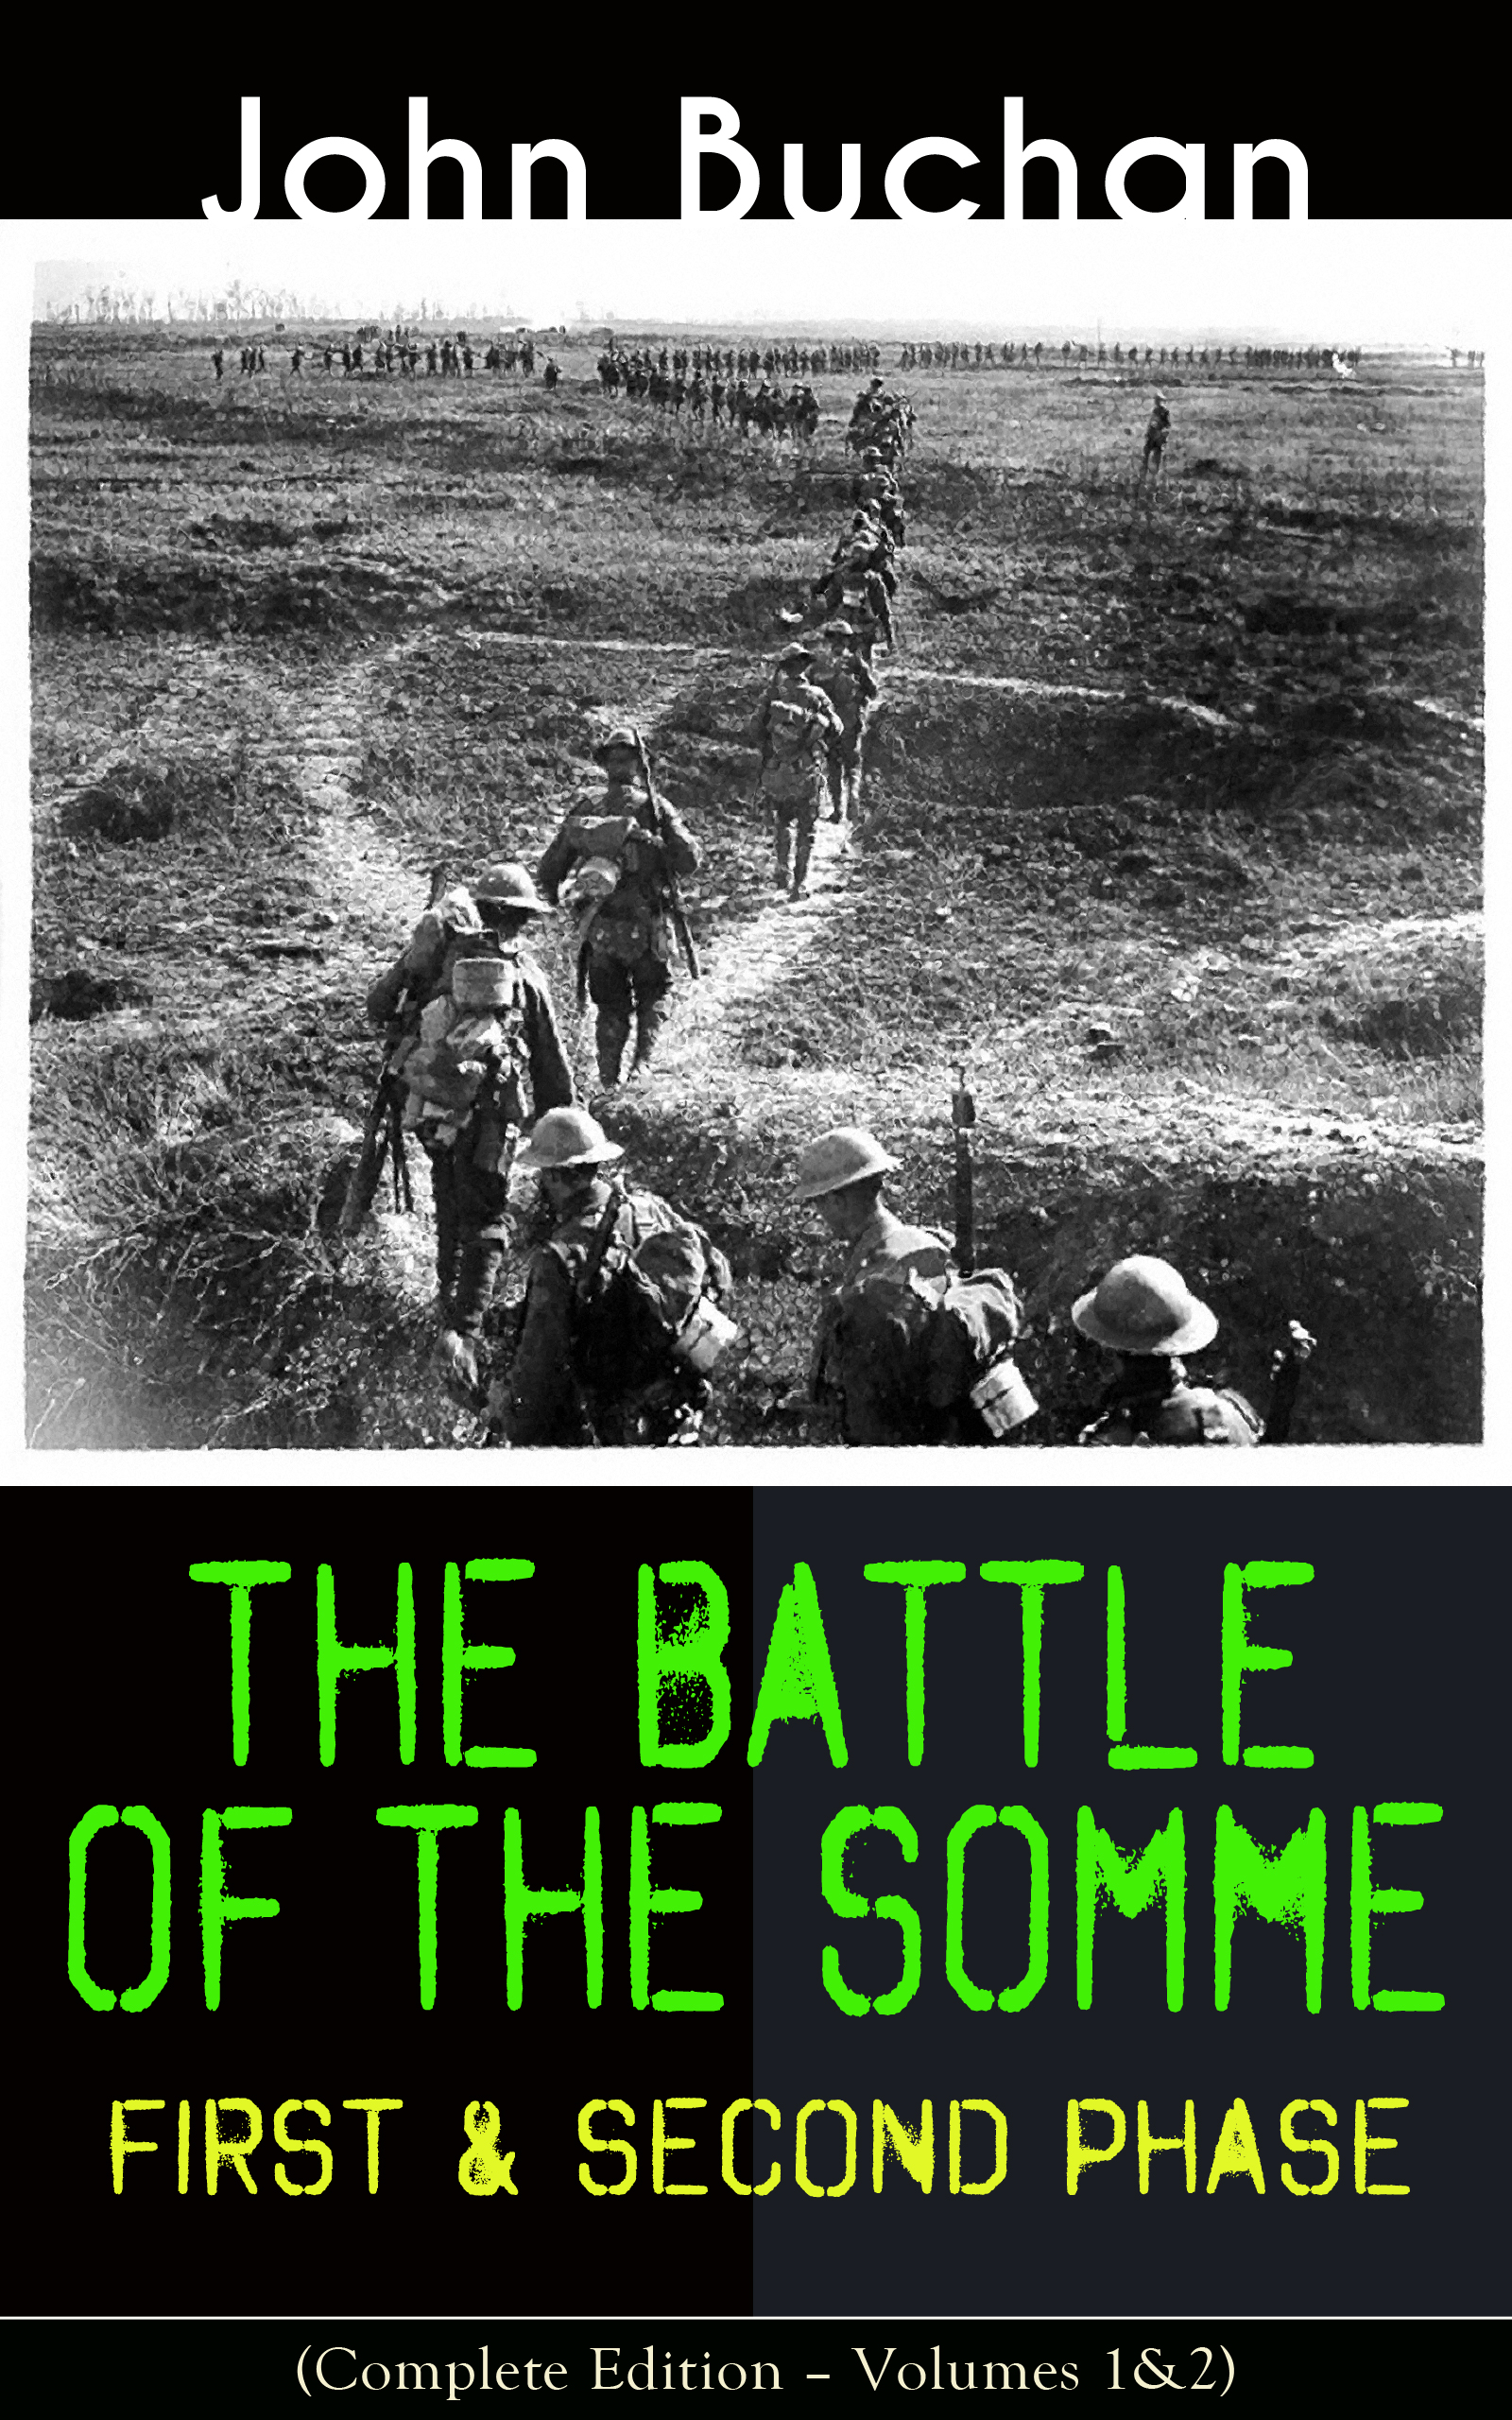 Buchan John THE BATTLE OF THE SOMME – First & Second Phase (Complete Edition – Volumes 1&2)